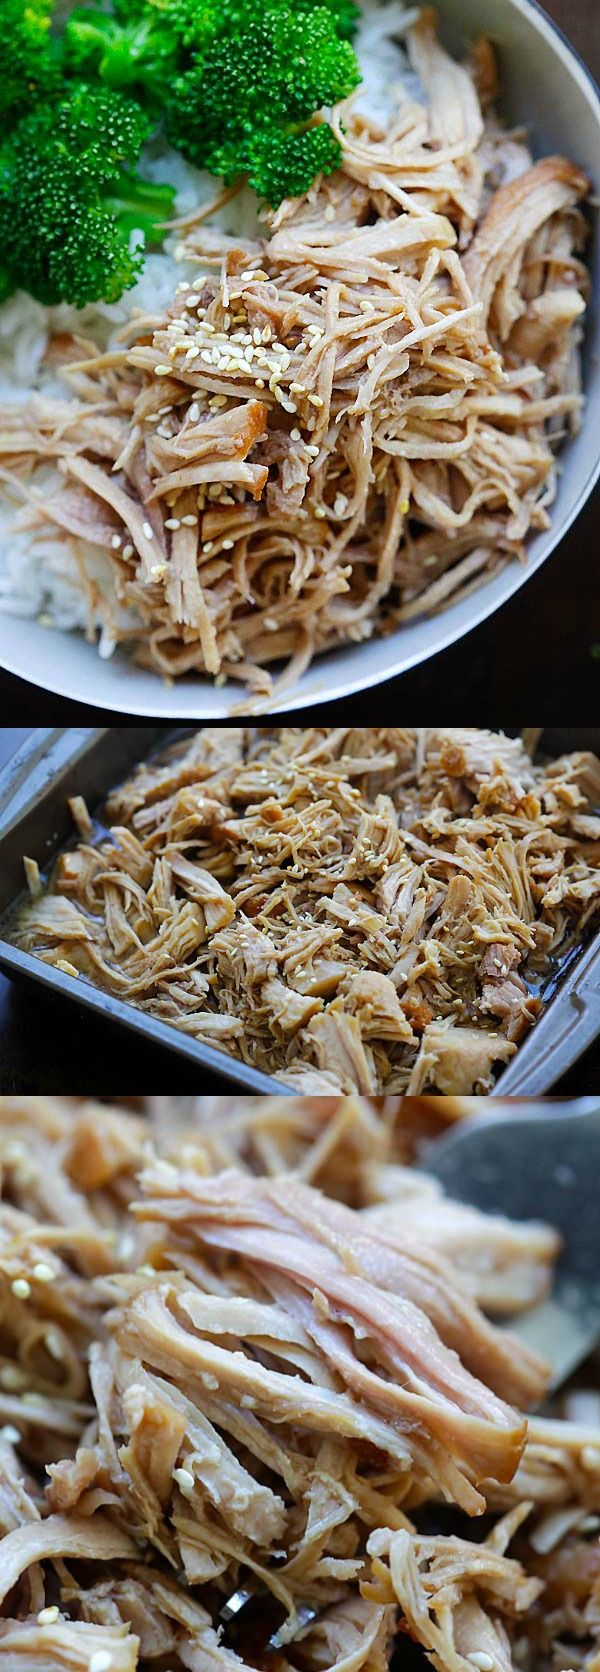 Hawaiian Kalua Pork (Instant Pot) - tender and juicy pressure cooker Hawaiian Kalua pork recipe. 10 mins active time and dinner is done | rasamalaysia.com